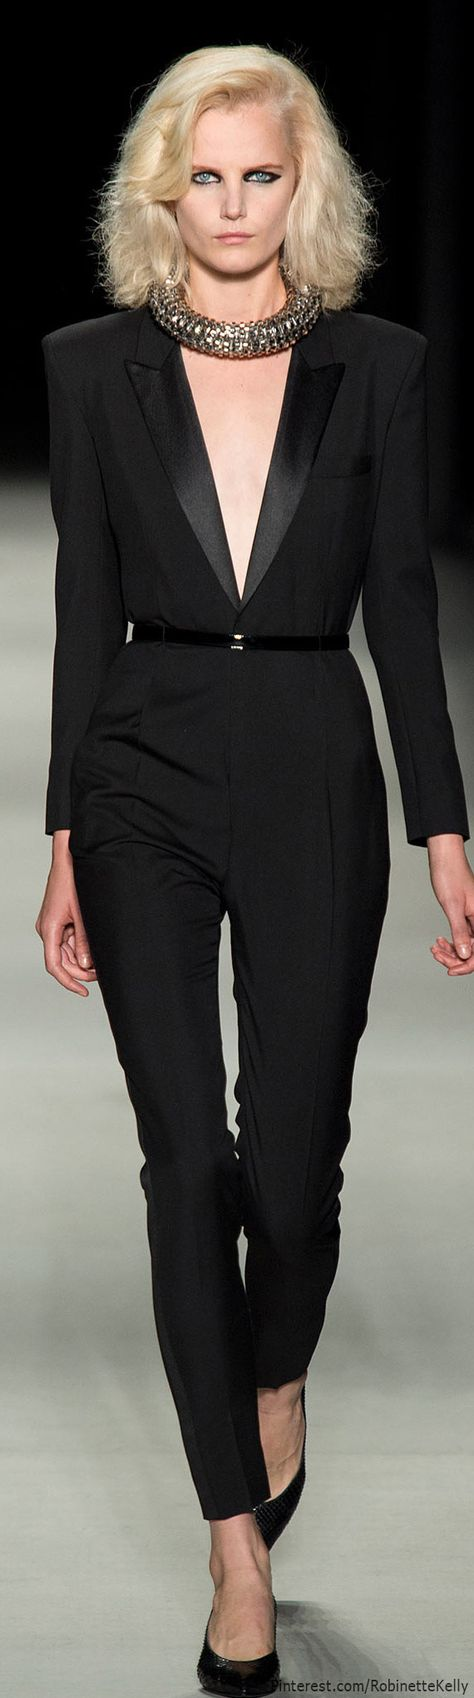 Saint Laurent   S/S 2014   The House of Beccaria